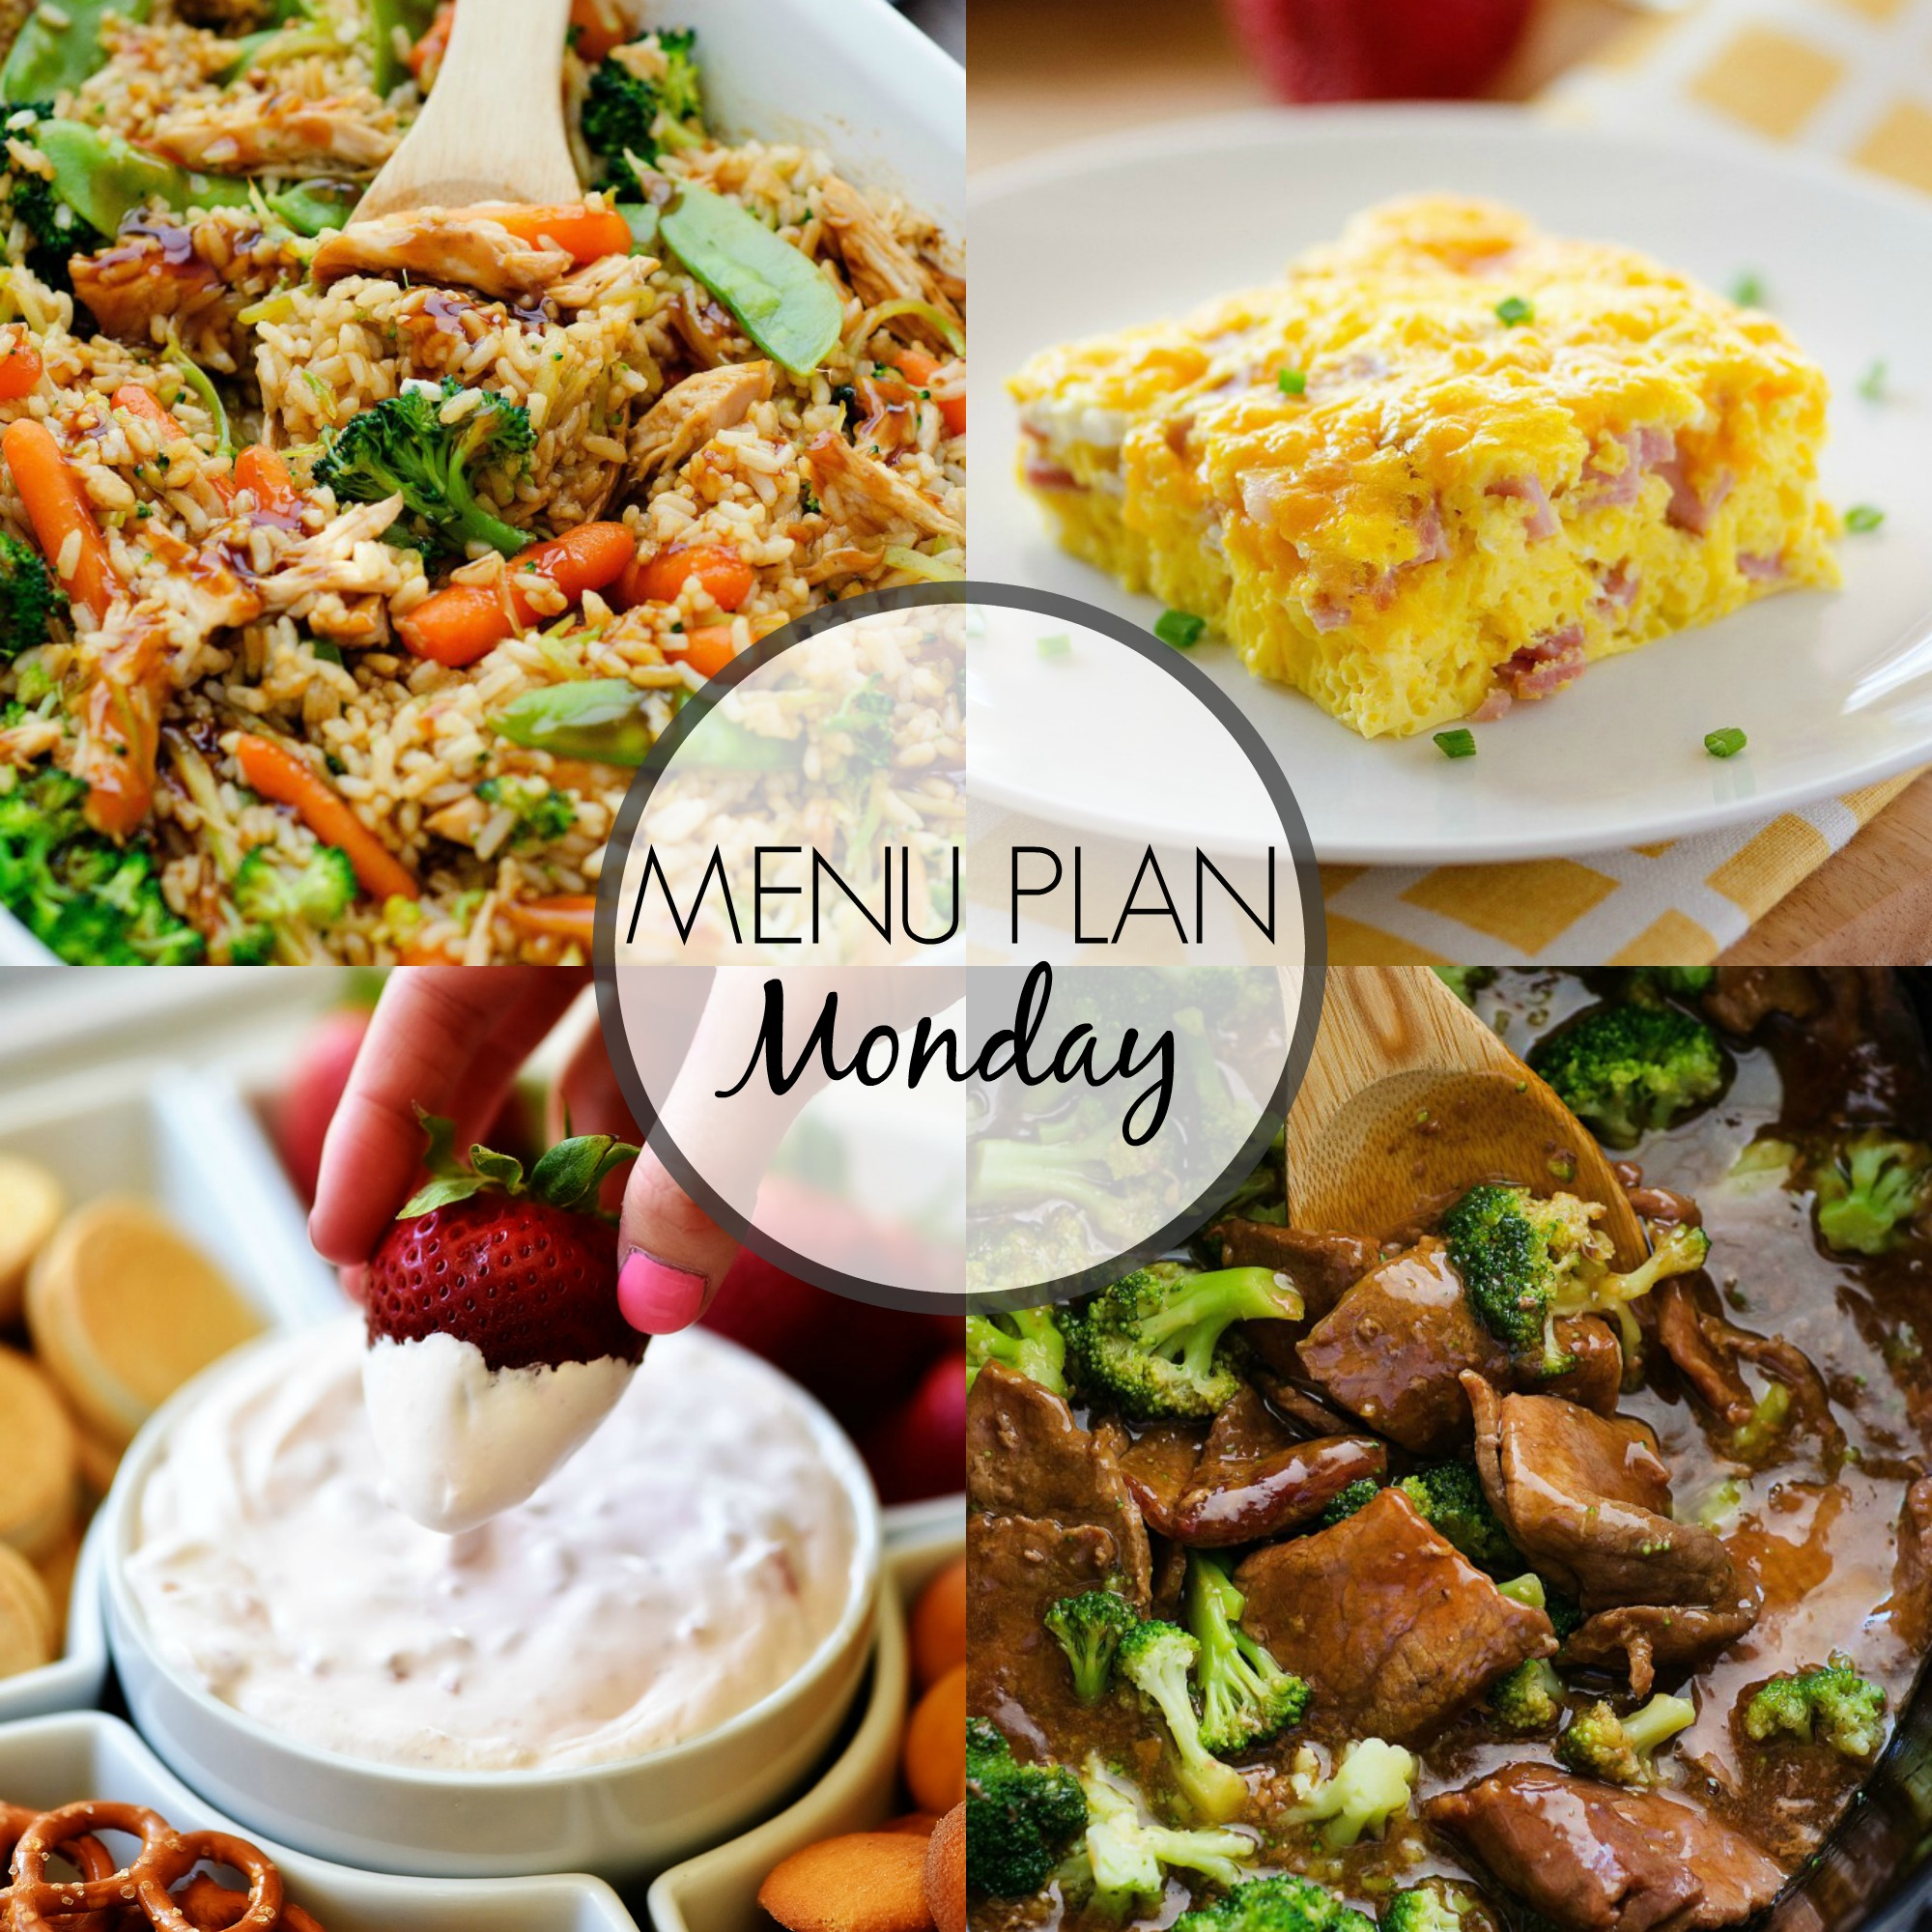 Menu Plan Monday #269